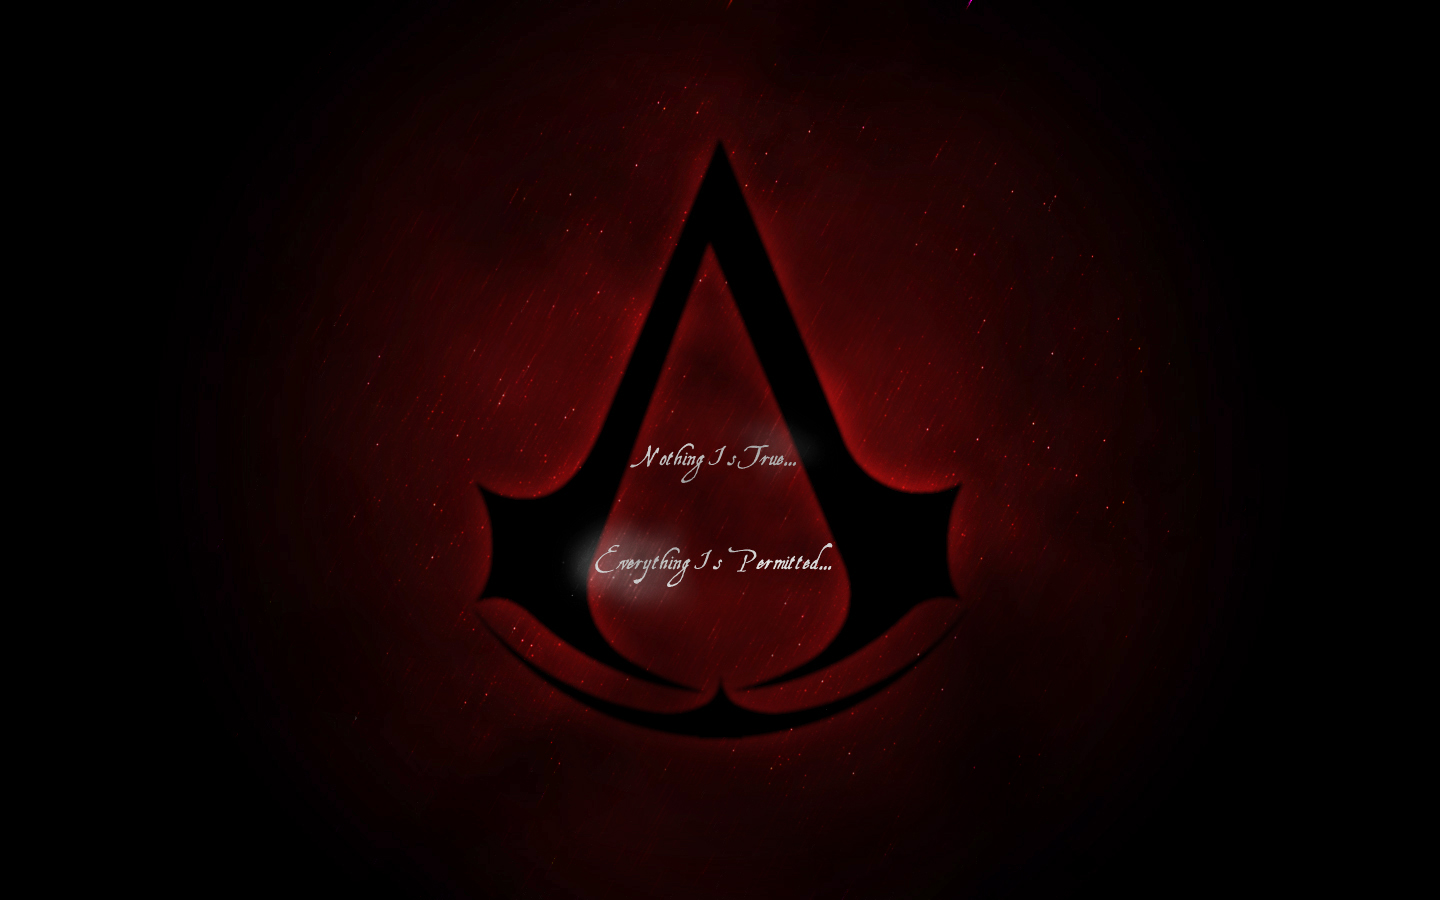 Assassins Creed Logo 2 by Shinkent on DeviantArt: shinkent.deviantart.com/art/Assassins-Creed-Logo-2-115418838